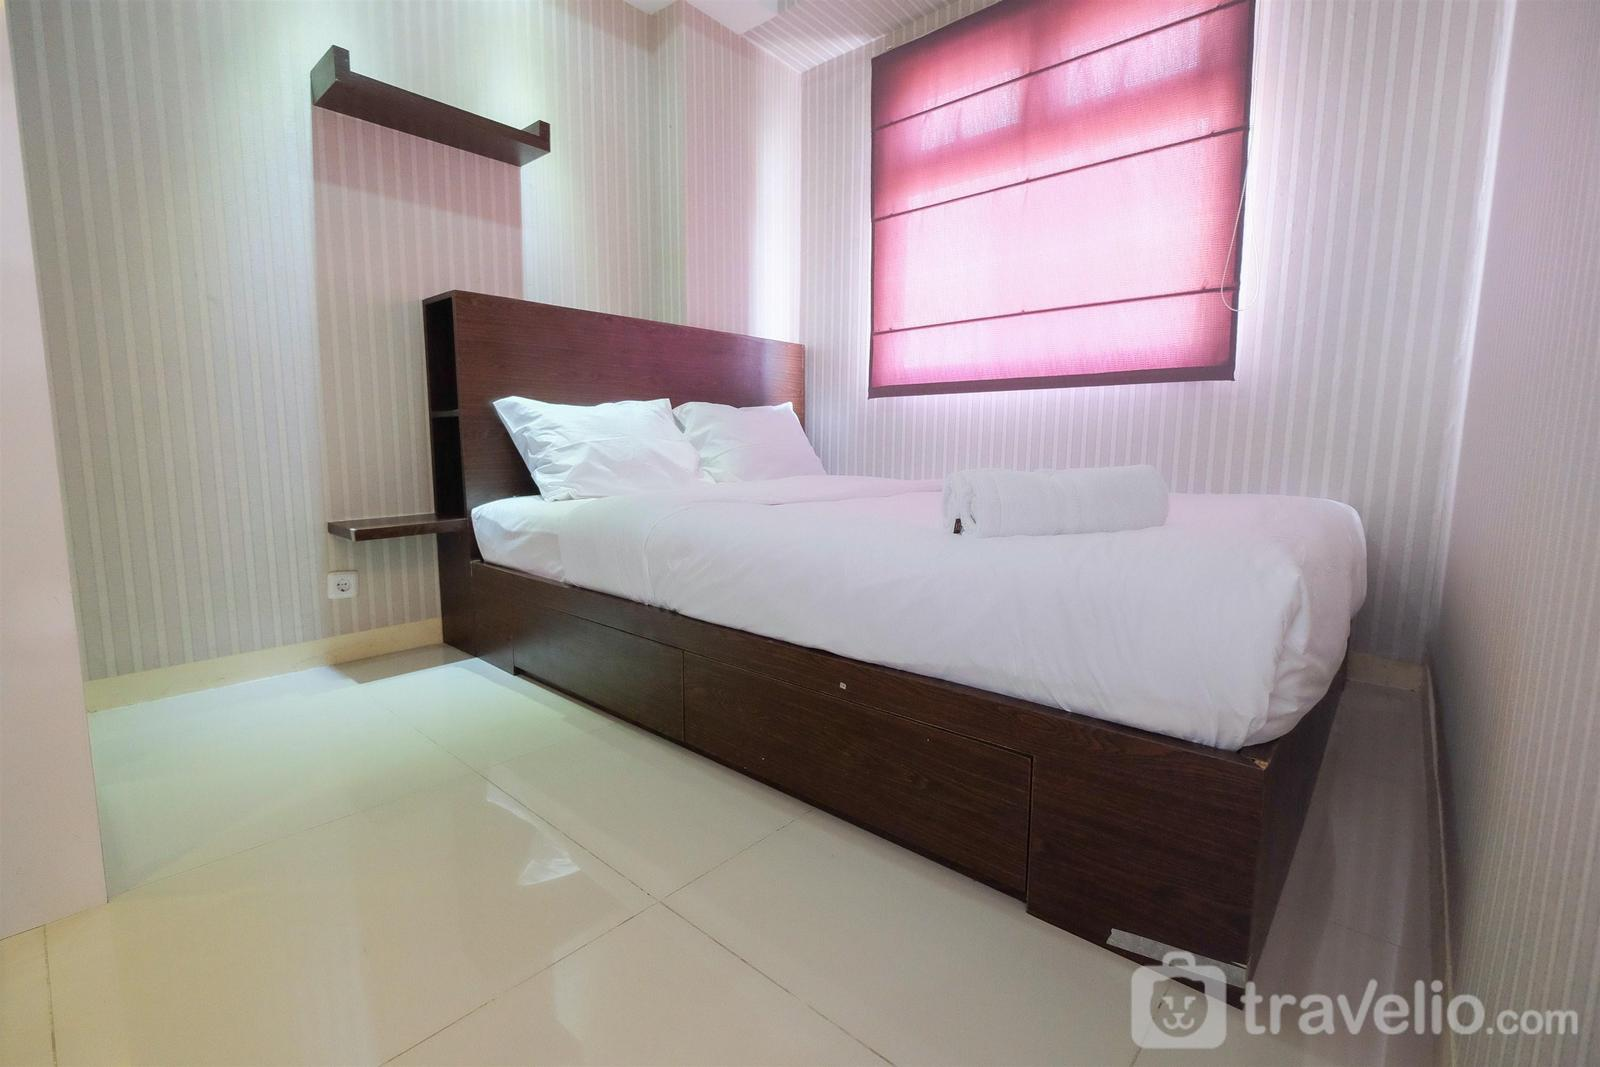 Green Pramuka Cempaka Putih - Homey and Relaxing 2BR Green Pramuka Apartment By Travelio